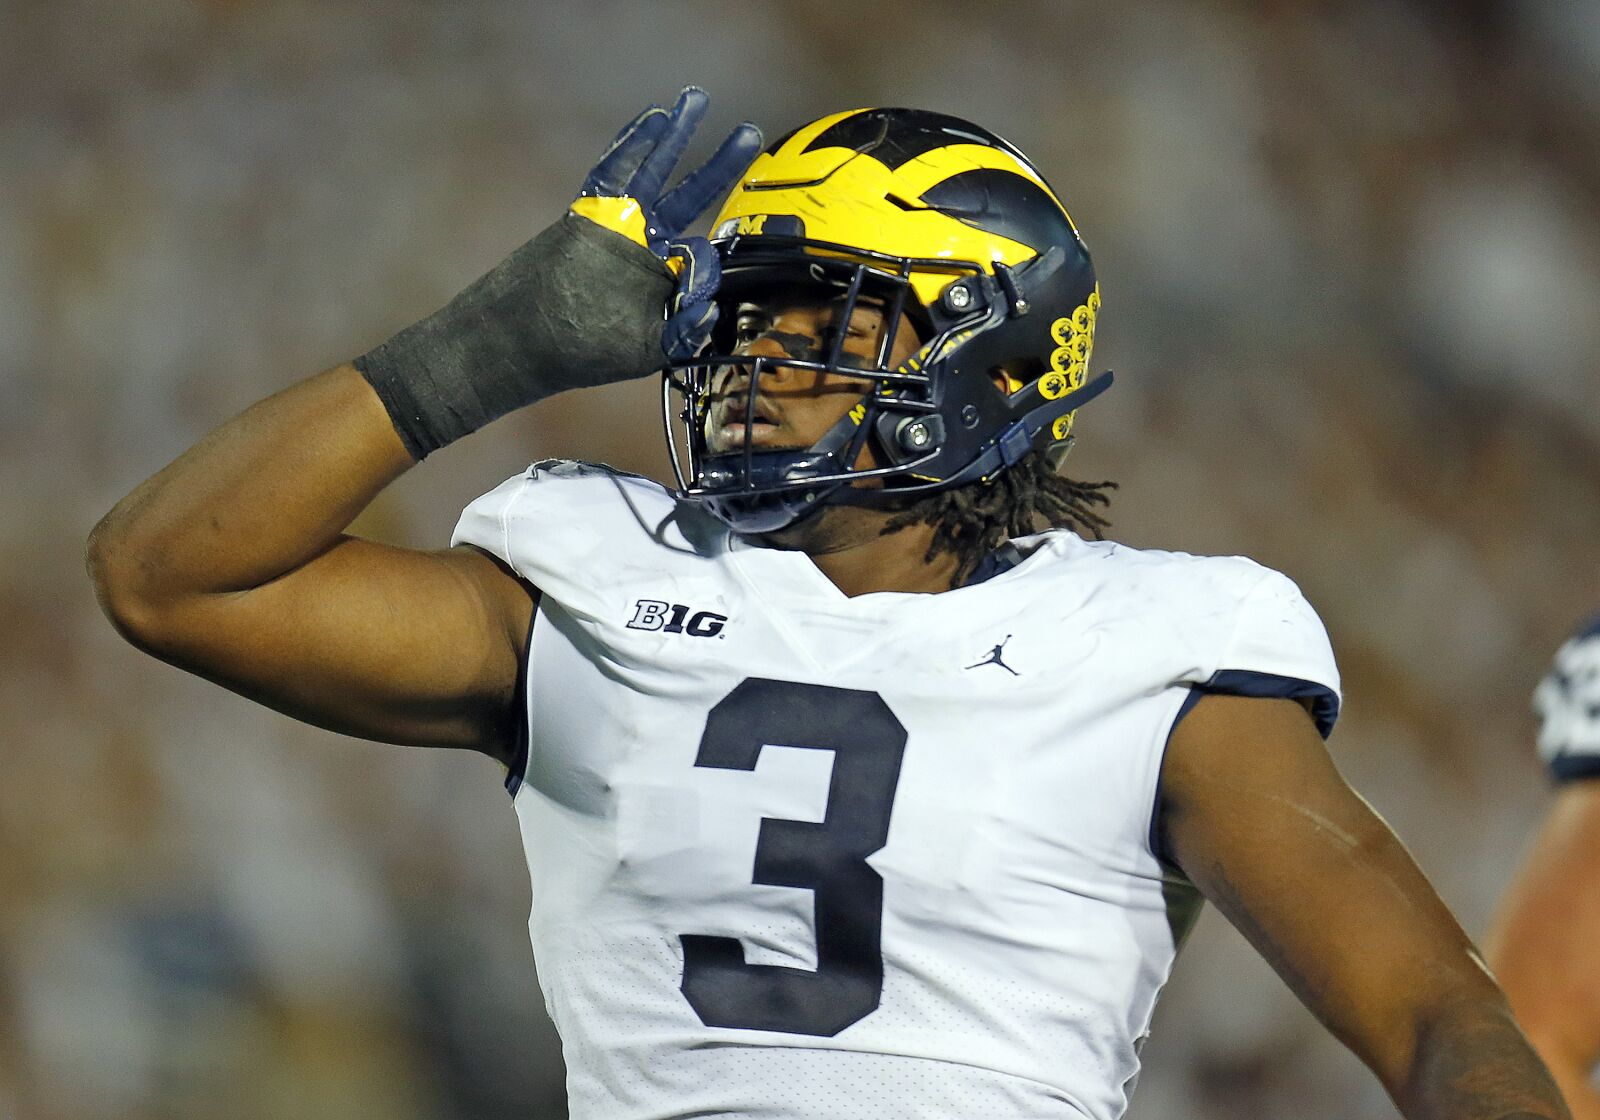 Packers roundup: What to expect from Rashan Gary in rookie season